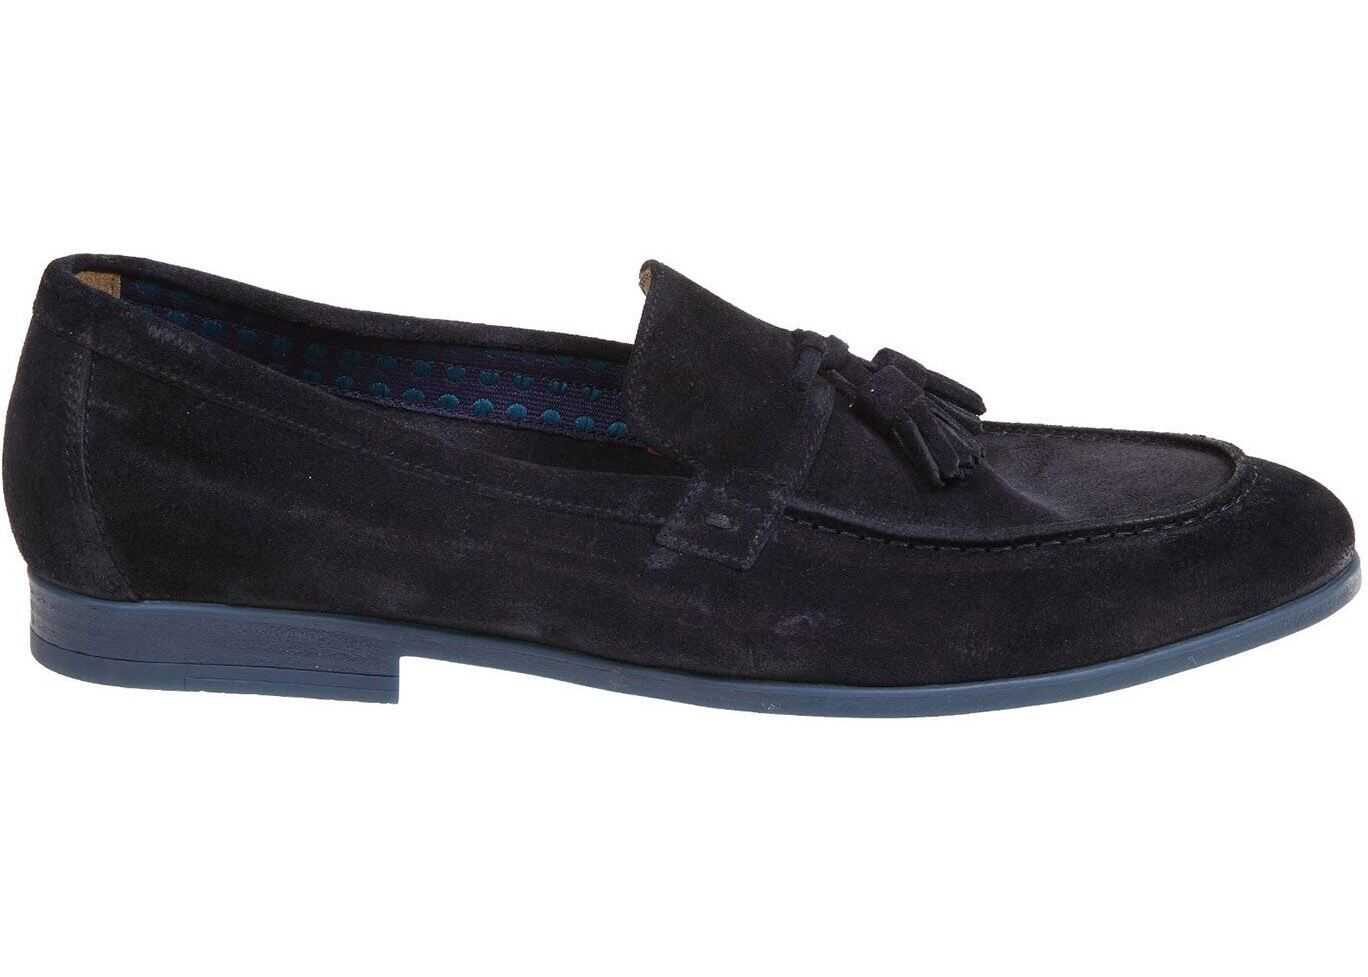 Doucal's Suede Loafers In Blue DU2823NWTOUZ067BB00 Blue imagine b-mall.ro